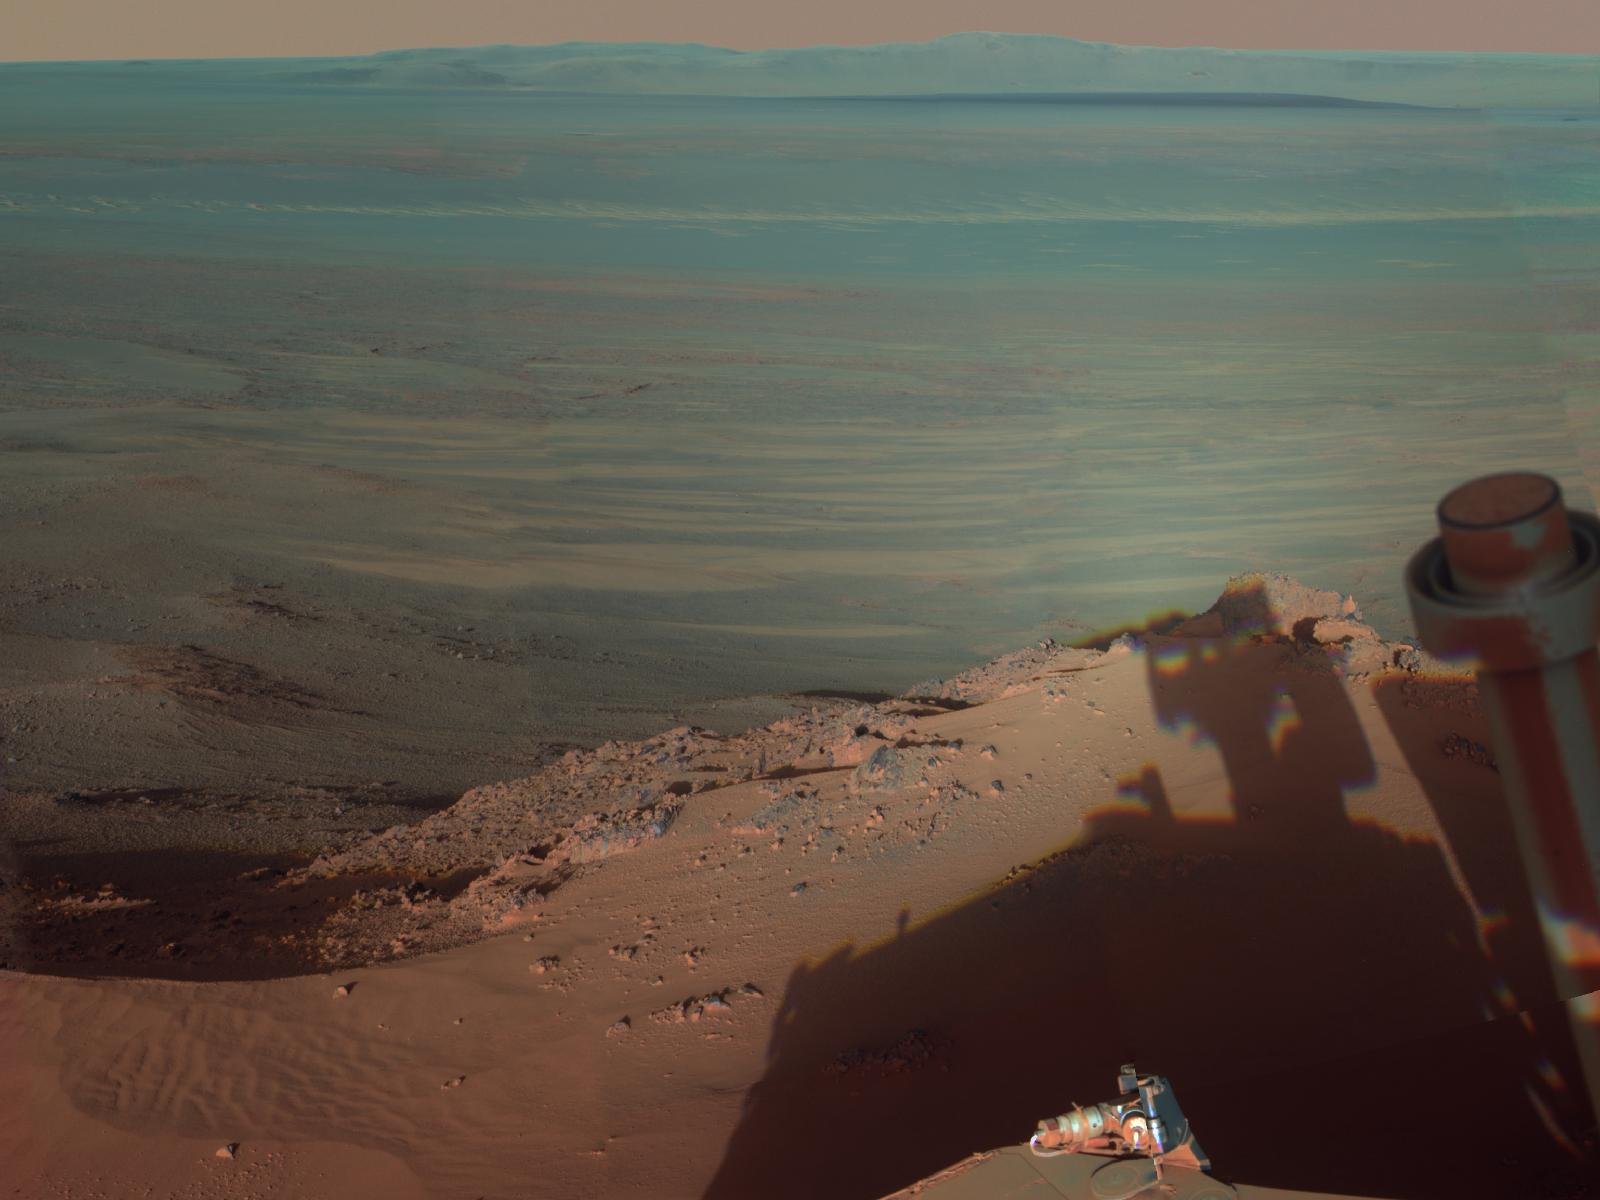 Mars Rover Sees Its Shadow in Red Planet Crater (Photo)